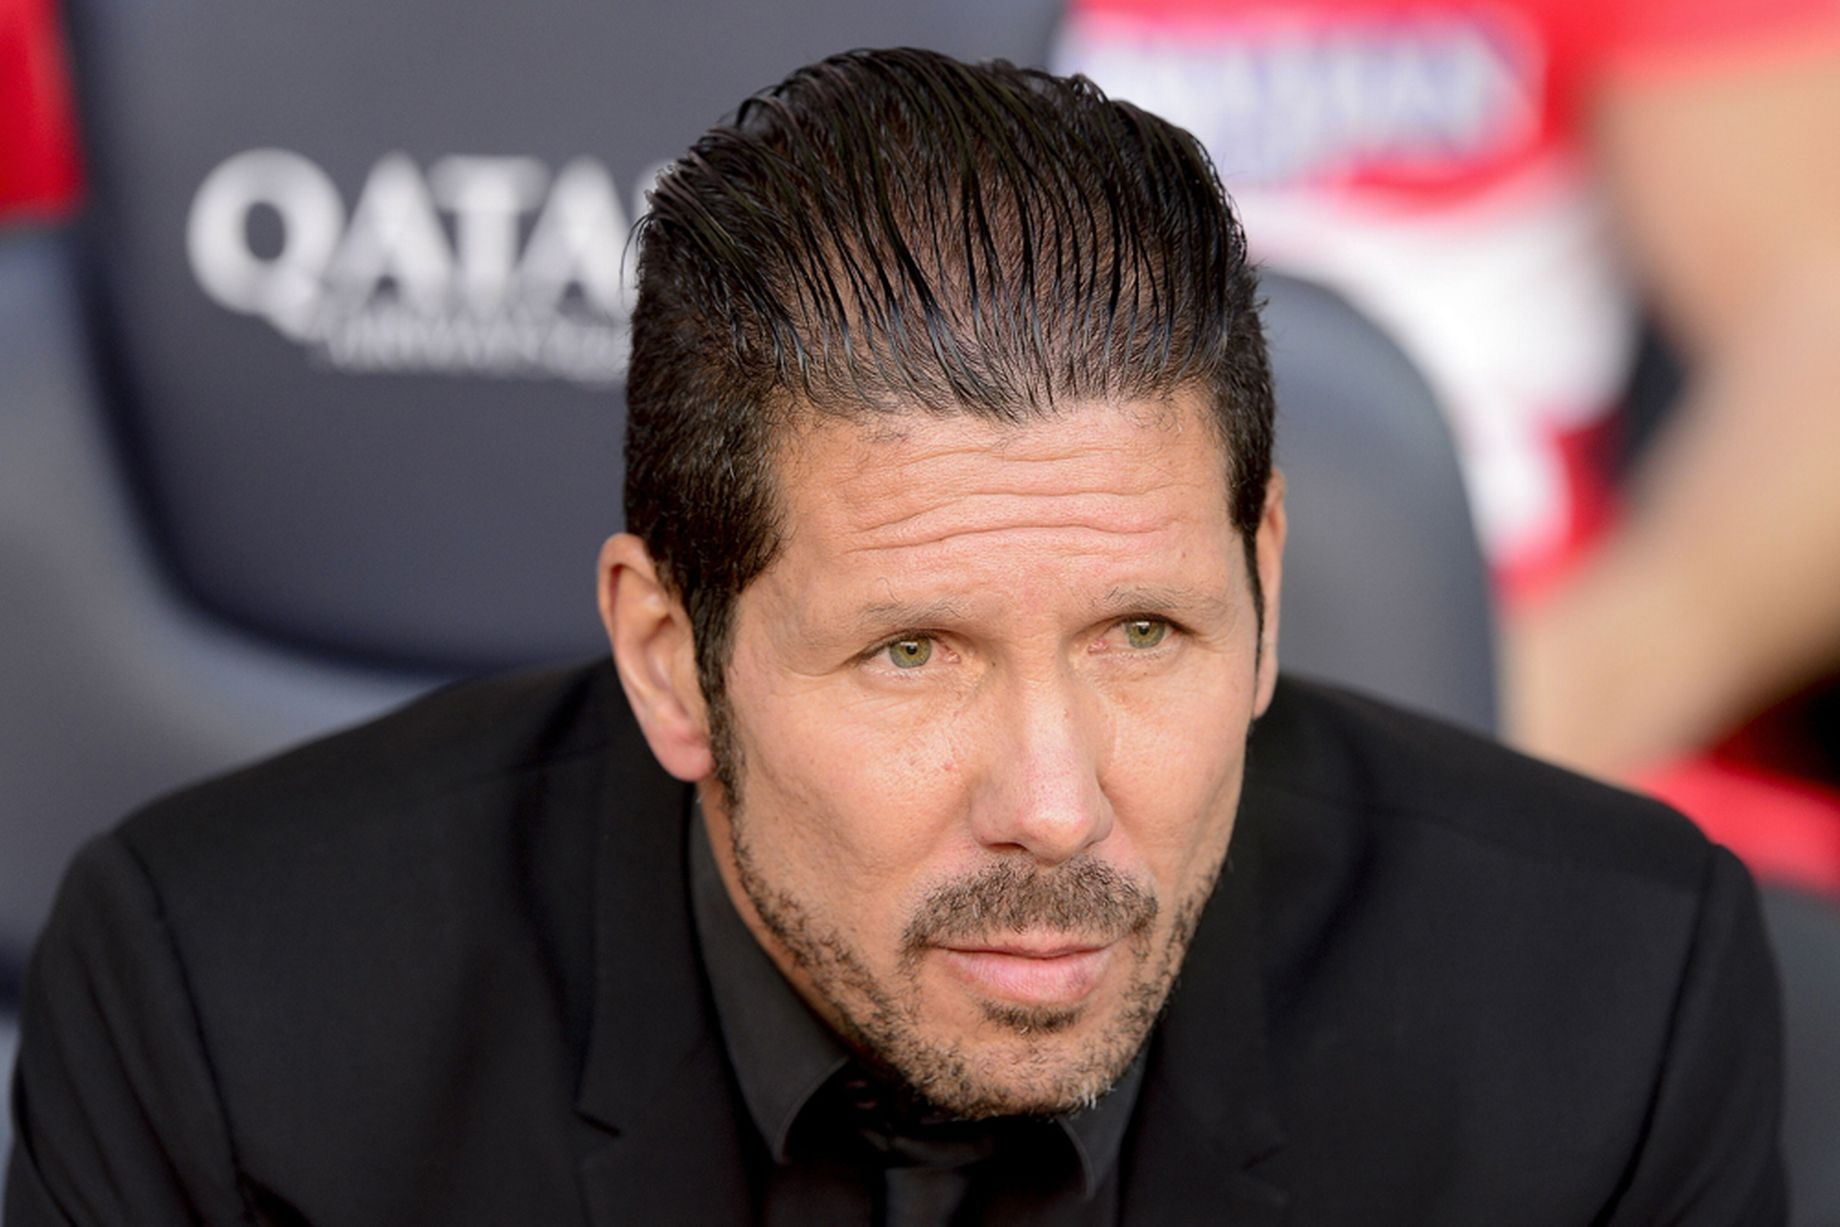 Diego Simeone en route to Paris Saint-Germain